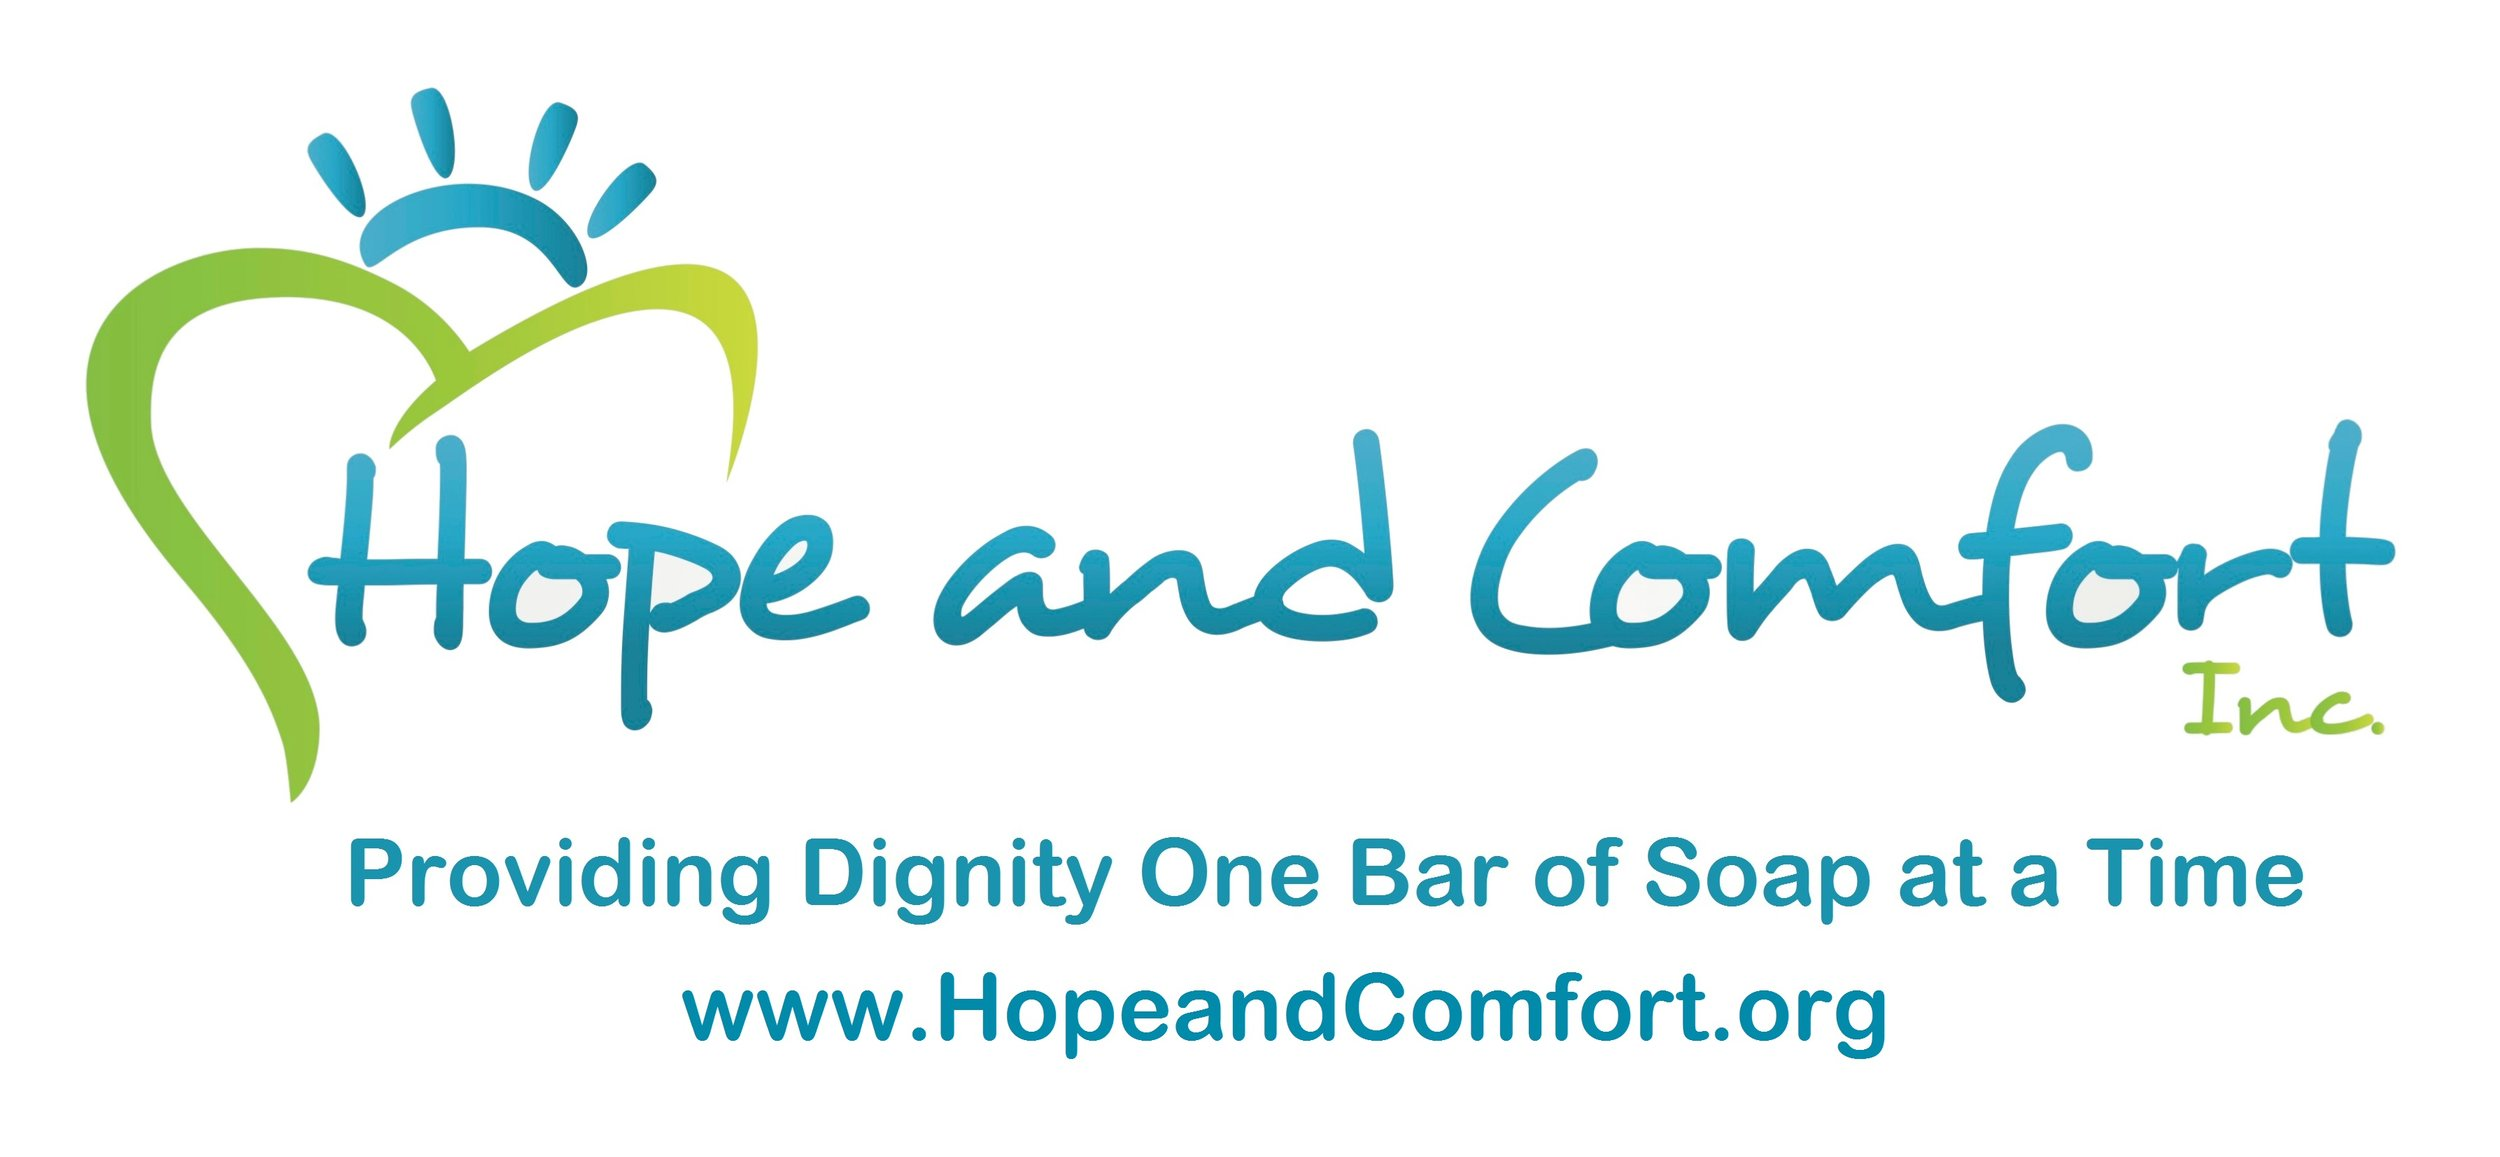 Hope and Comfort